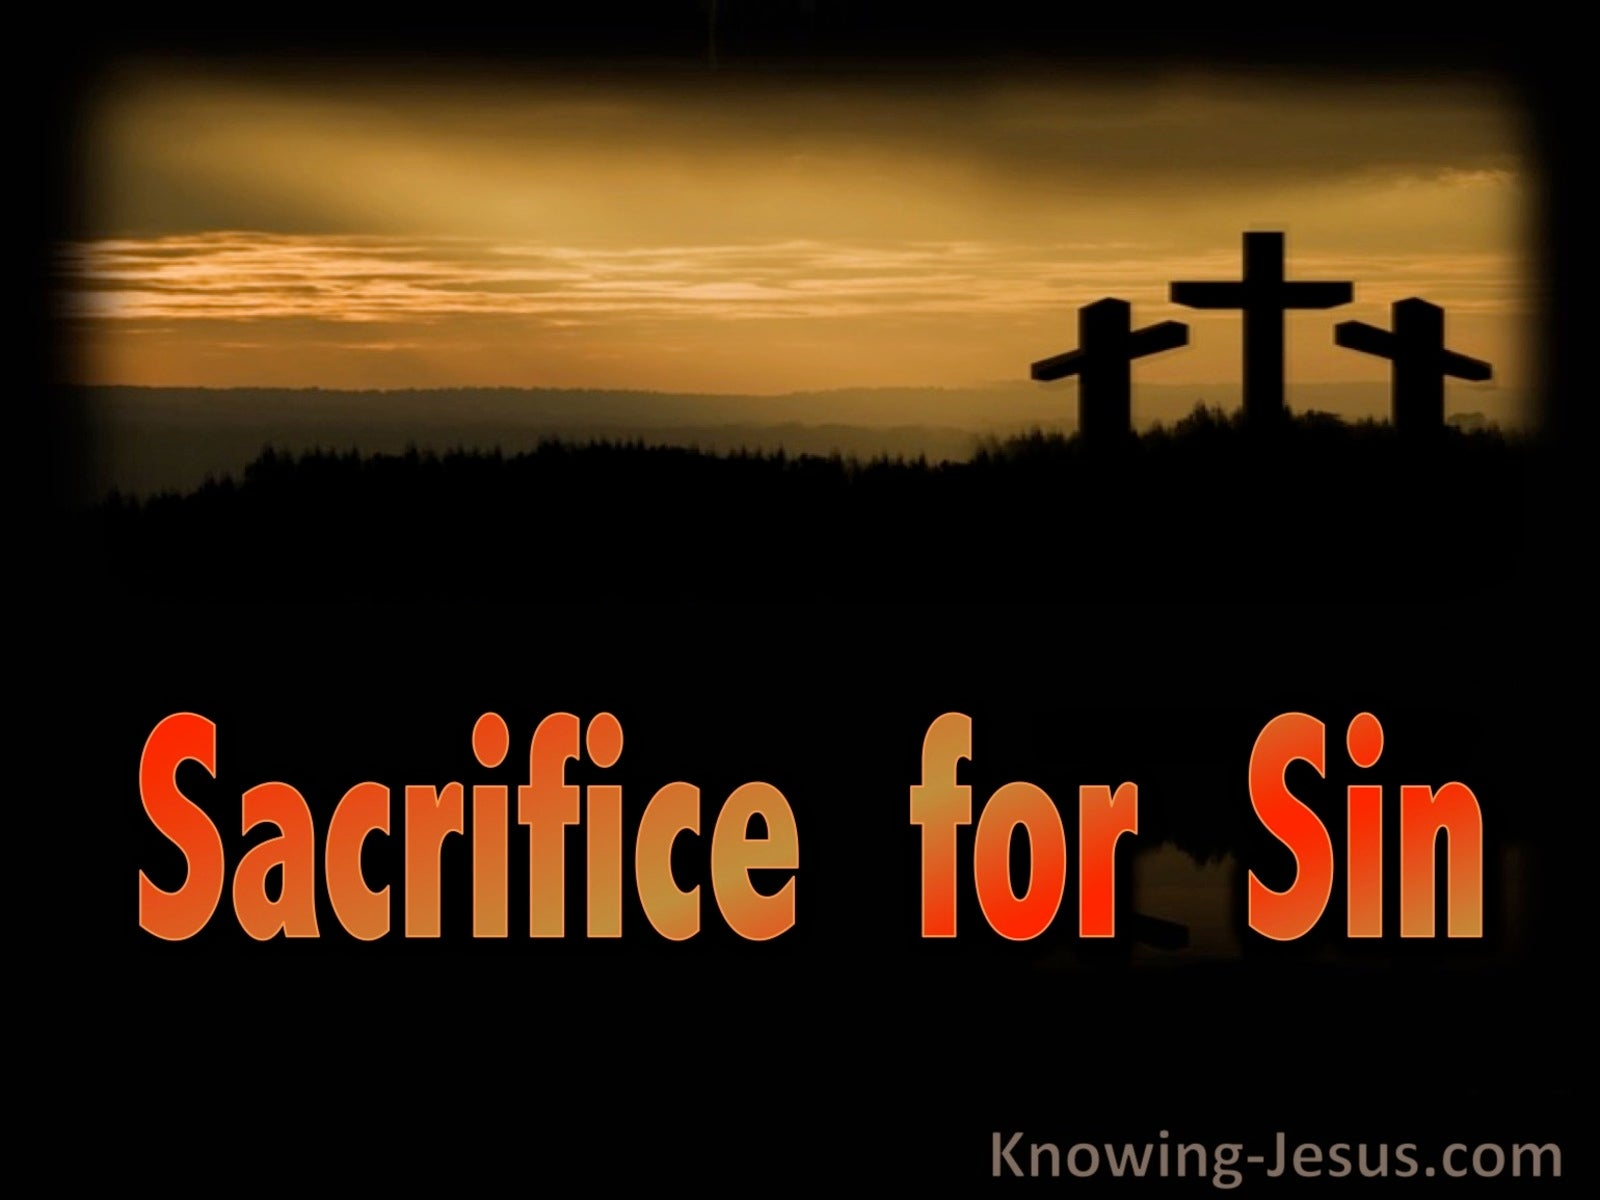 Sacrifice for Sin (devotional) (black) - Romans 8:3